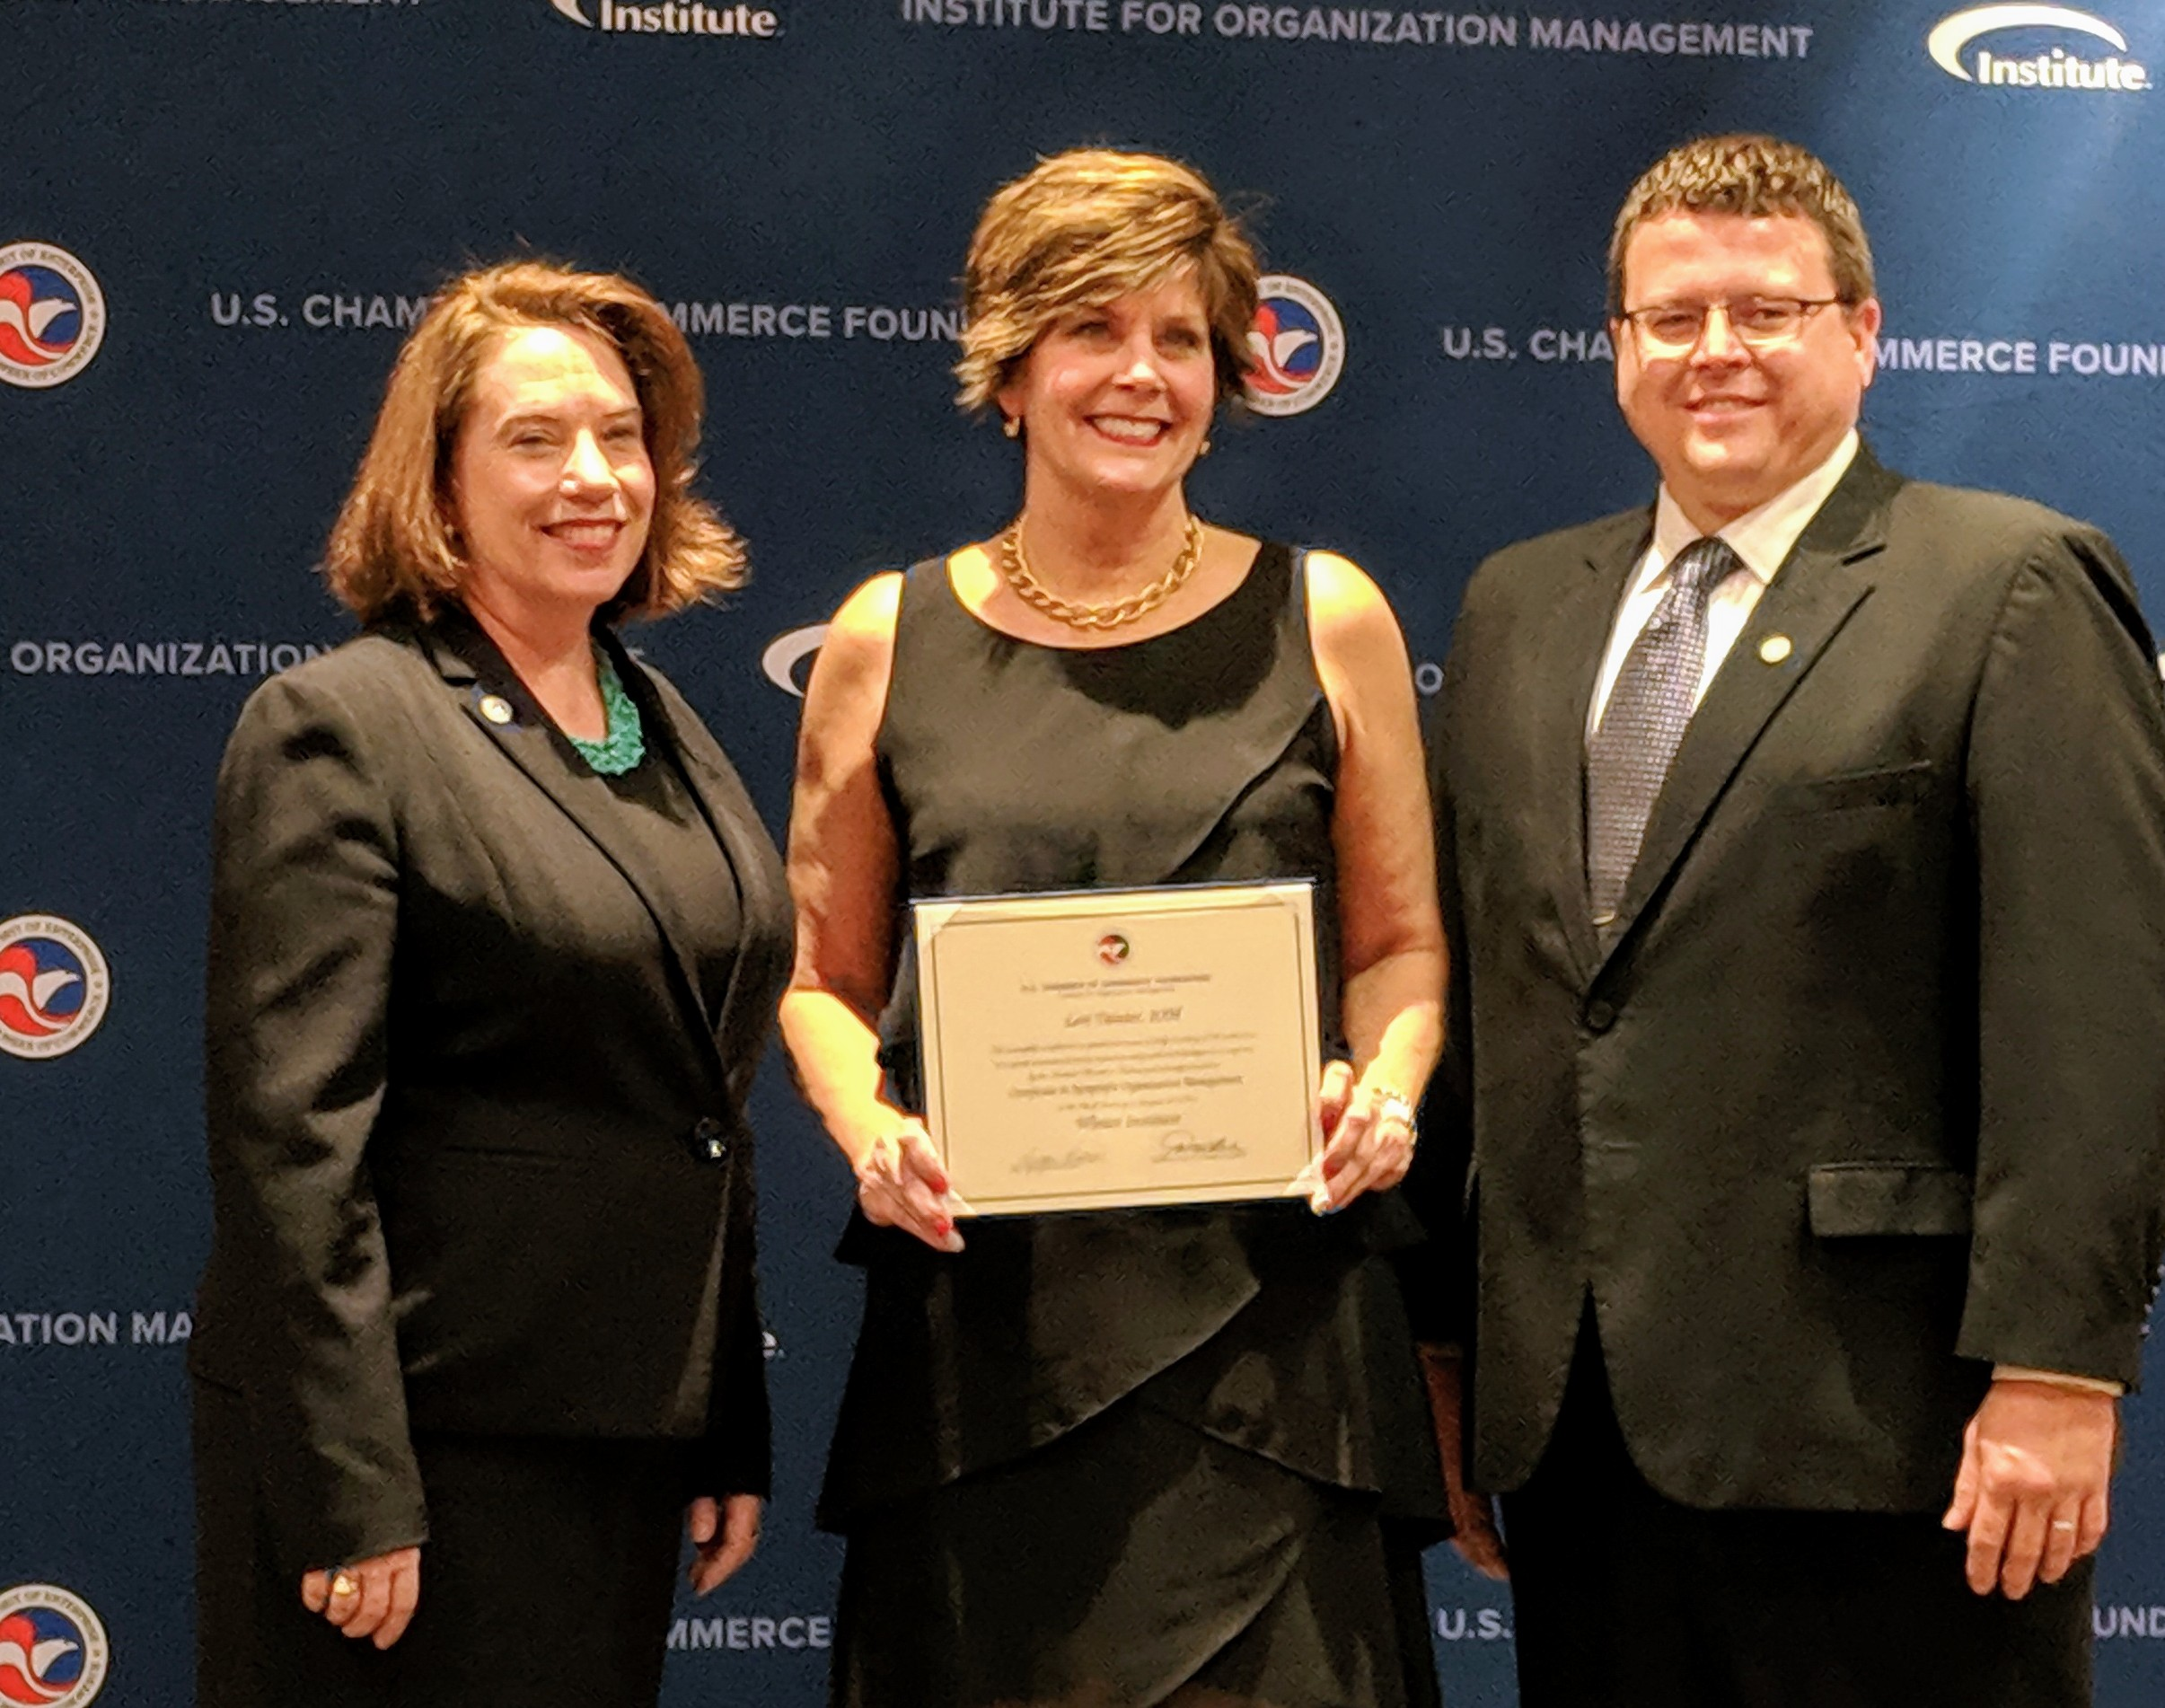 Lori Tainter, IOM of Greater St. Charles County Chamber of Commerce Graduates from Institute for Organization Management